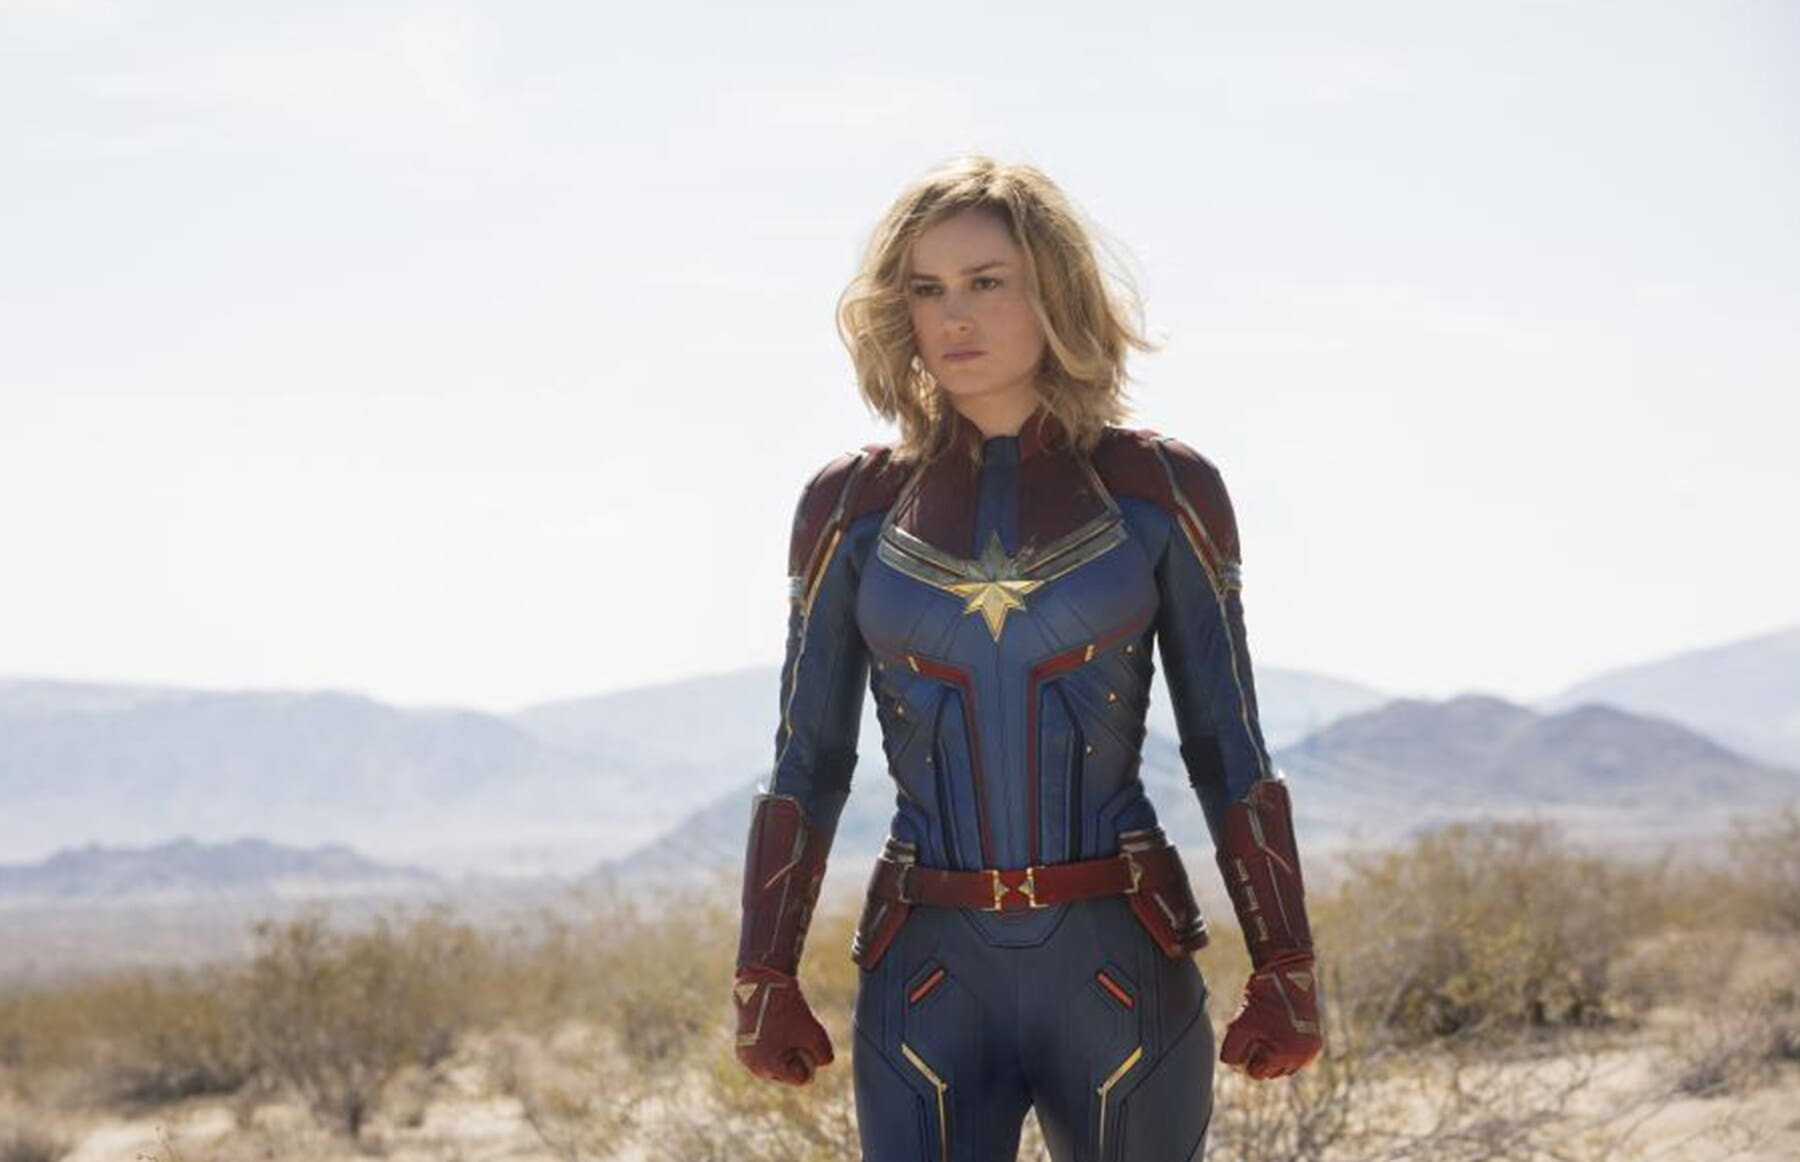 Bri Larson as Captain Marvel in Blue and red costume with gold trim in the desert